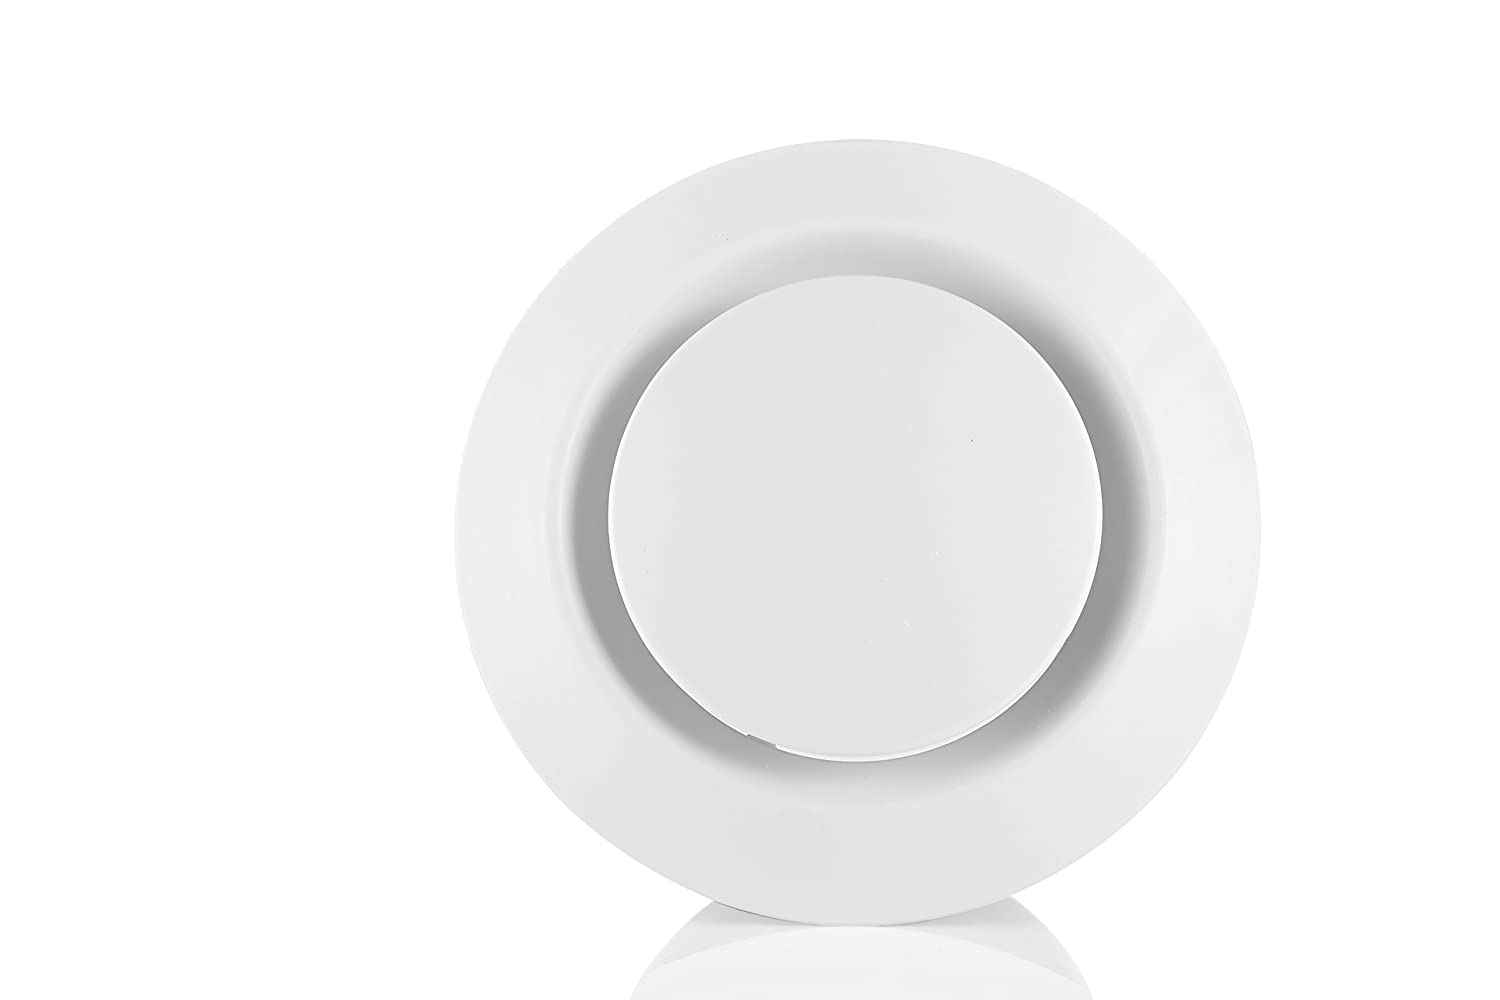 HG POWER ABS Adjustable Air Vent Round Soffit Exhaust Vent White Inline Duct Fan Outlet Vent 4 Inch